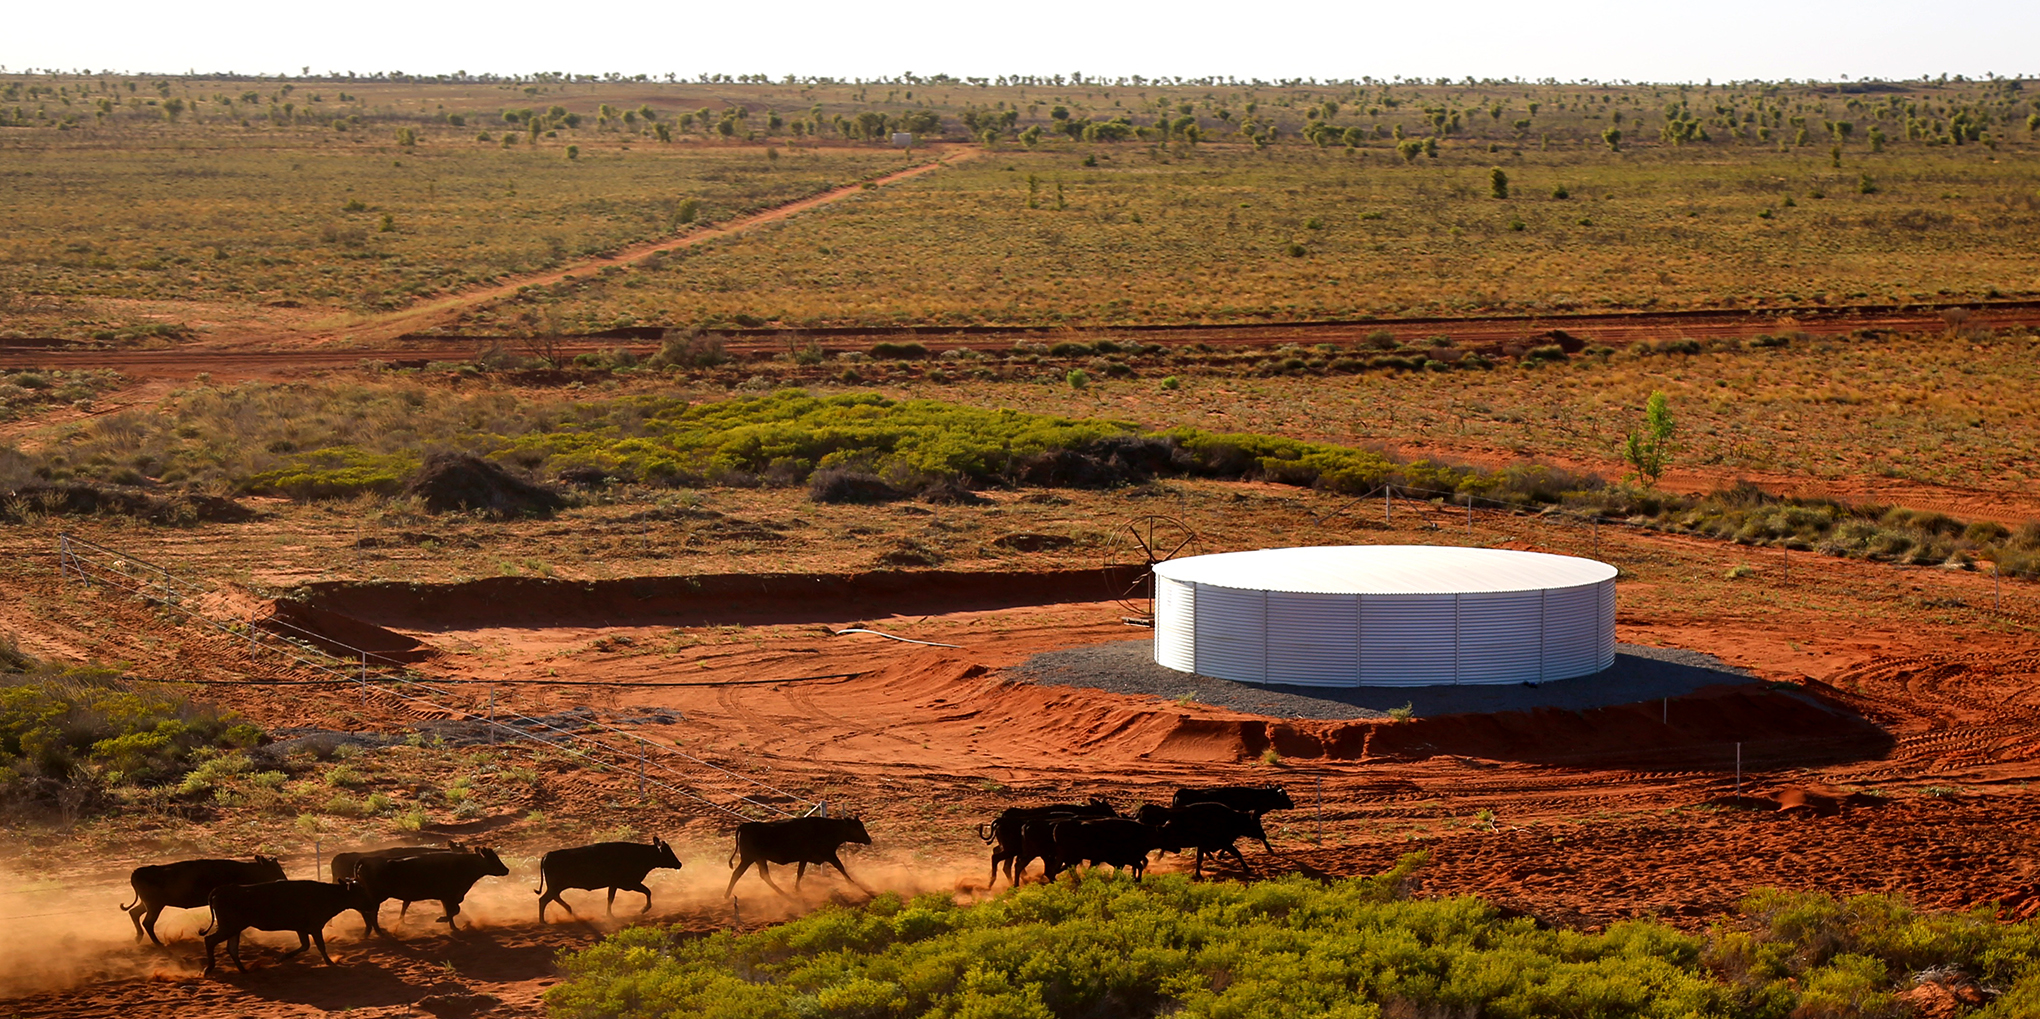 cattle in front of a steel type of water tank